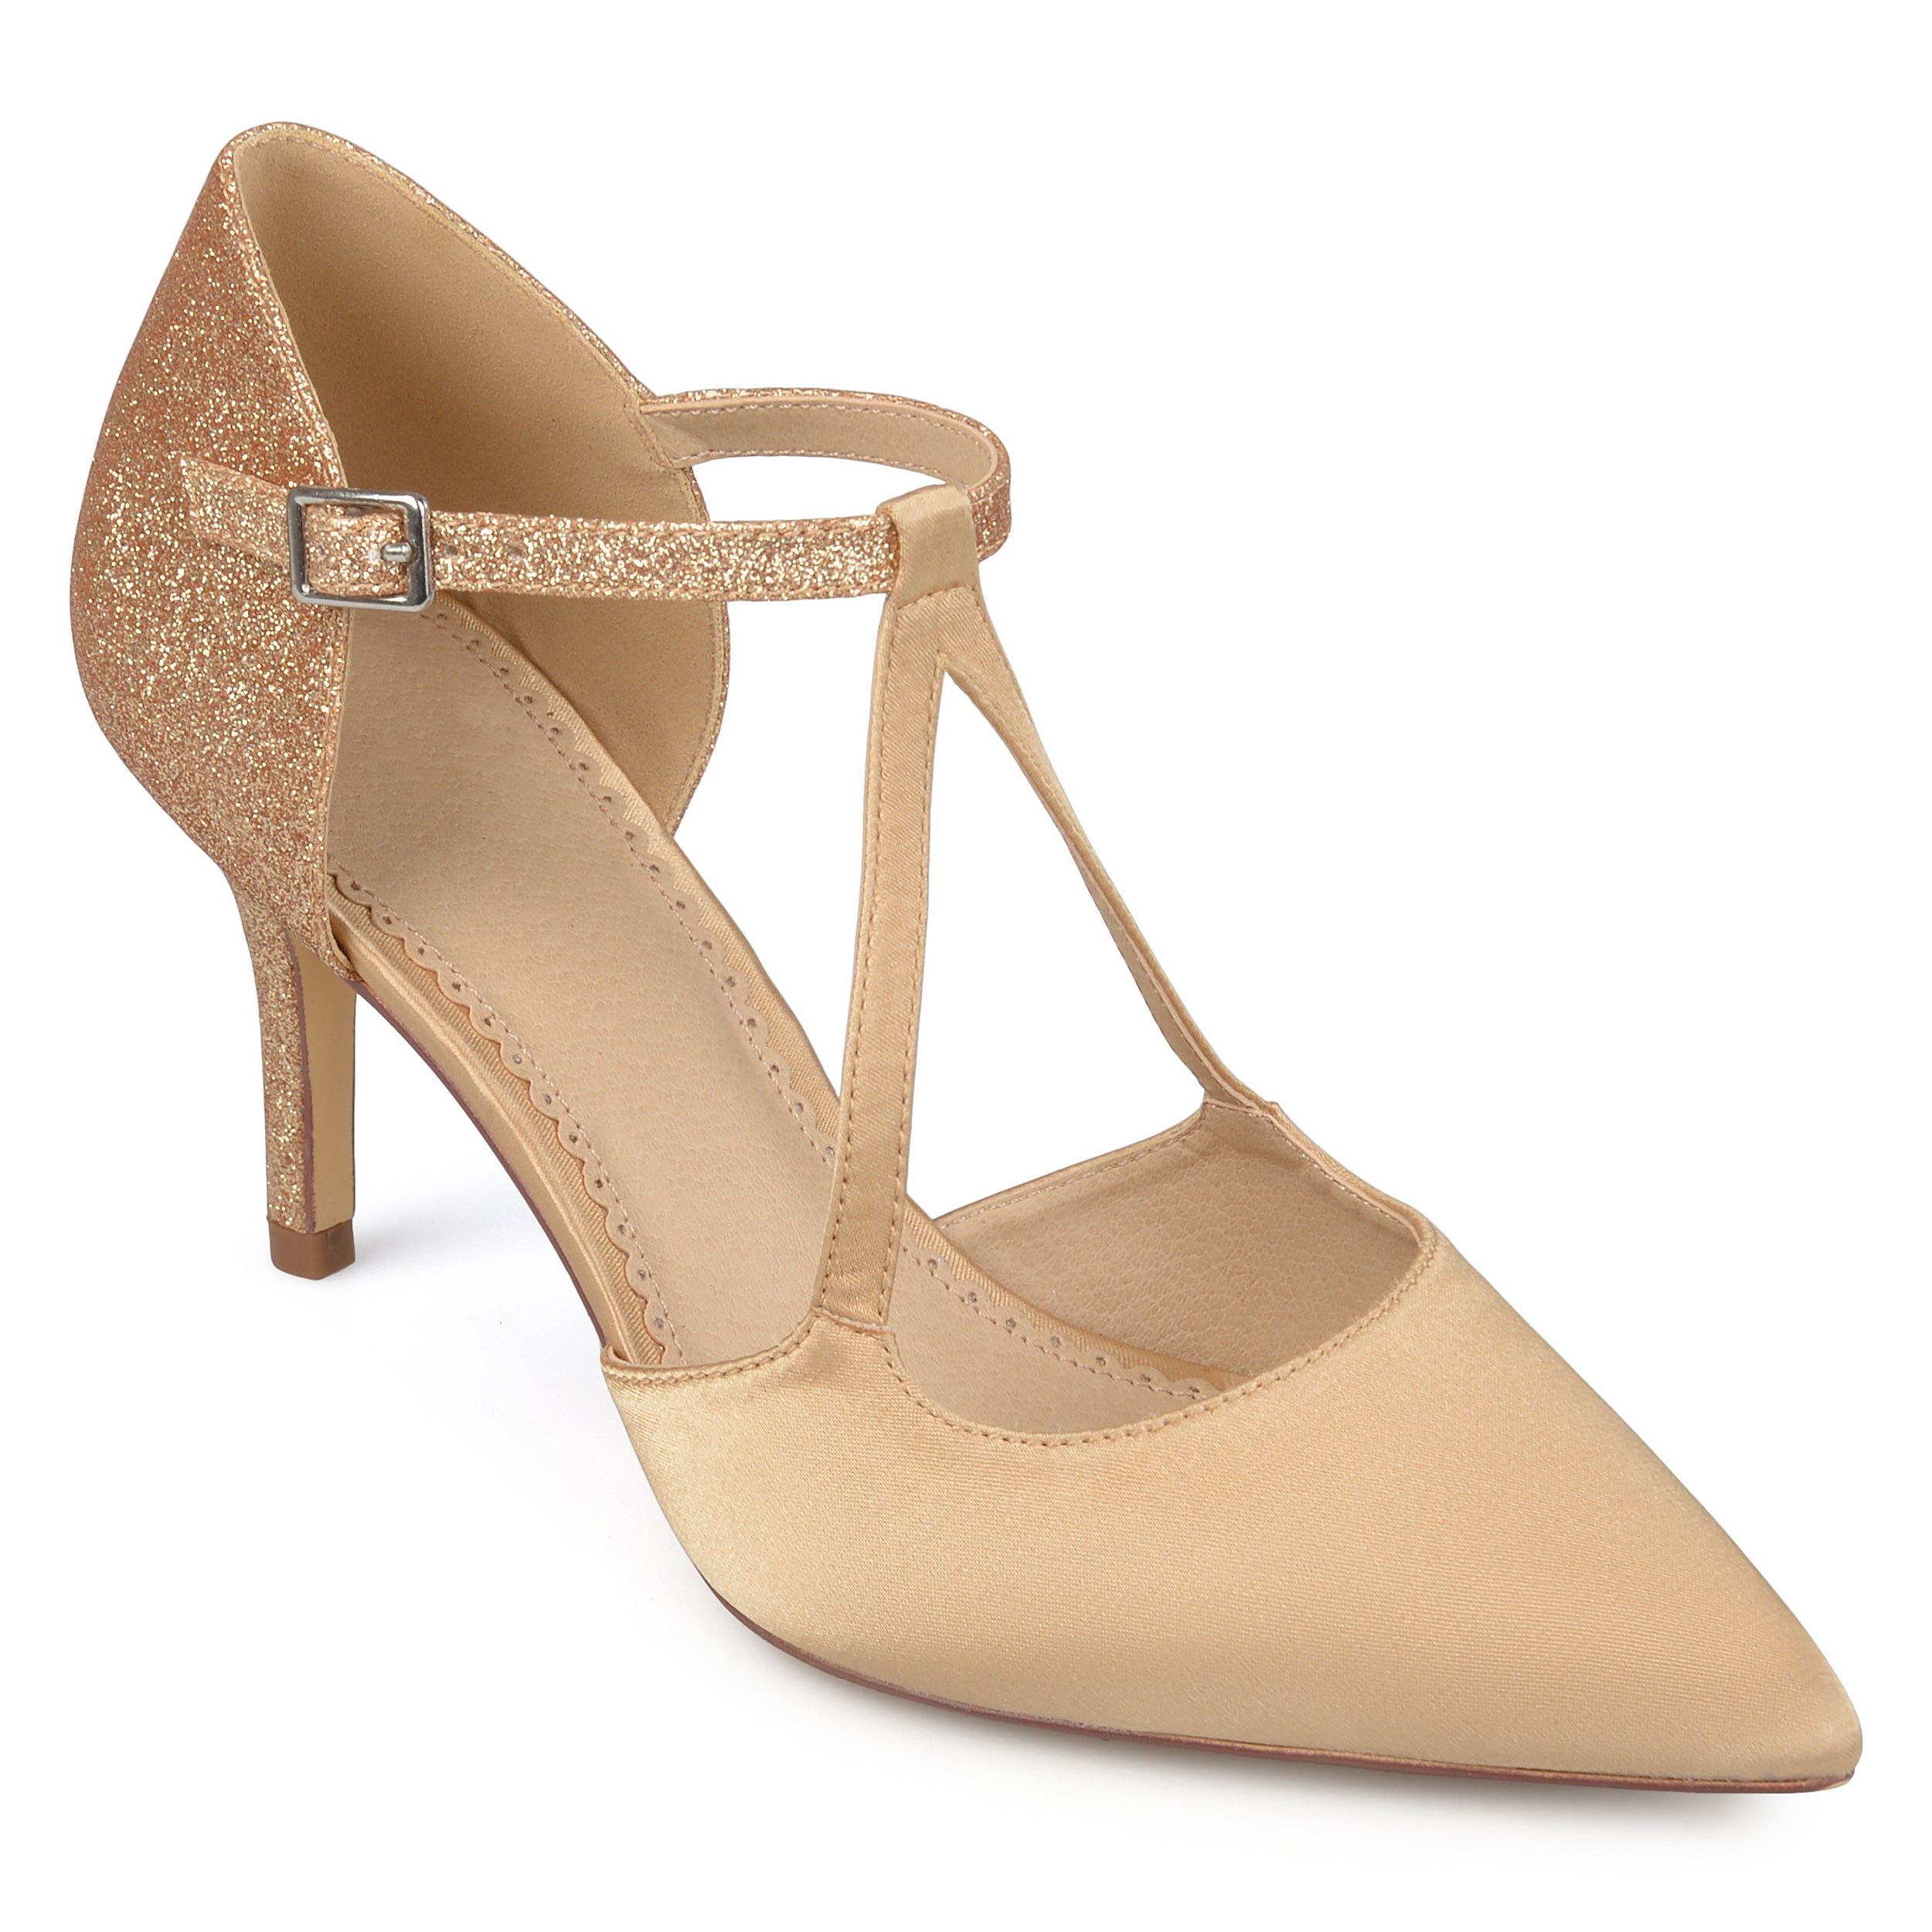 b2e50d225787e Journee Collection Women's 'Elodie' Pointed Toe V-strap Satin Glitter Heels